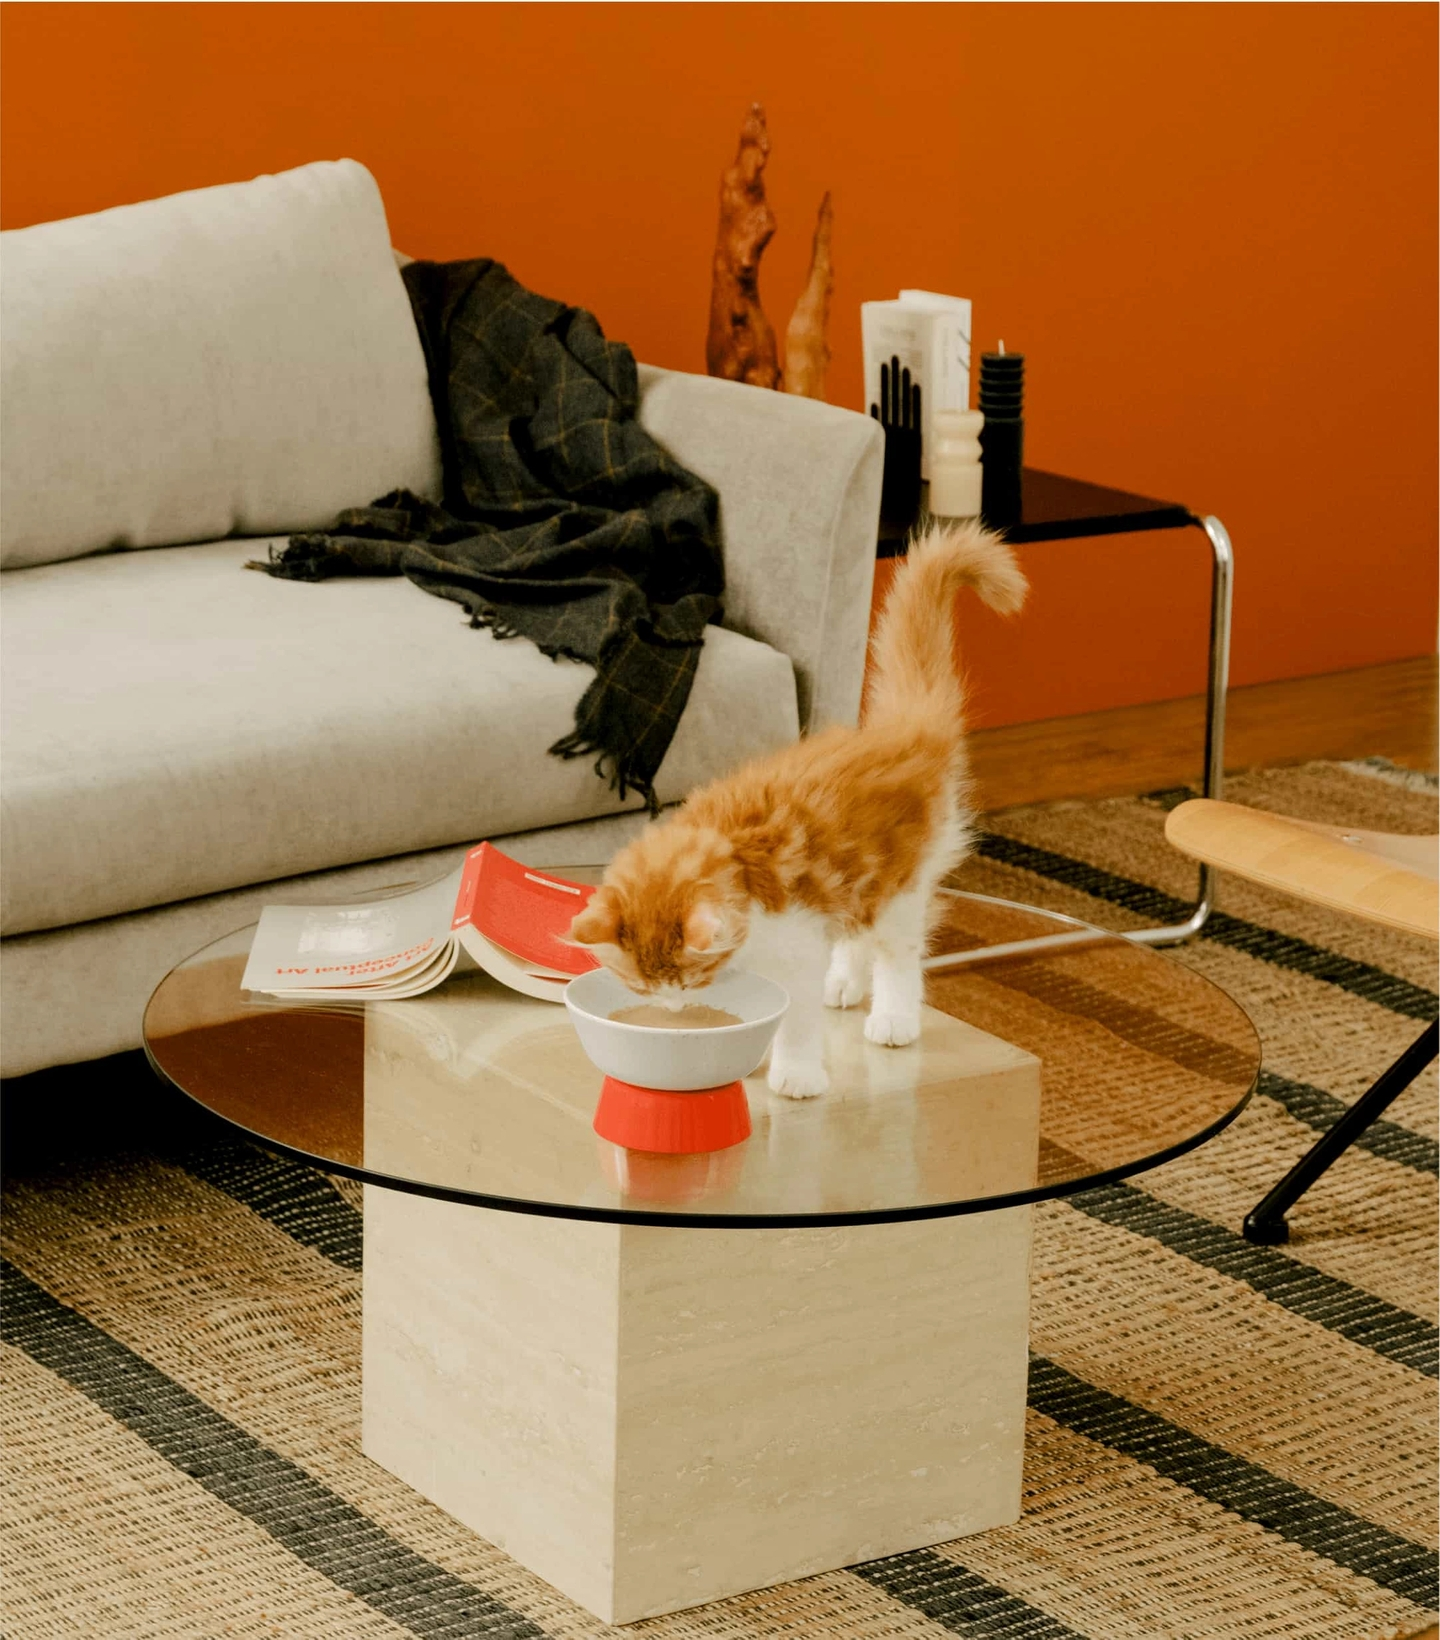 Maine coon kitten licking Cat Person Goodness Blends healthy cat treats out of a Cat Person Mesa Bowl on a glass coffee table